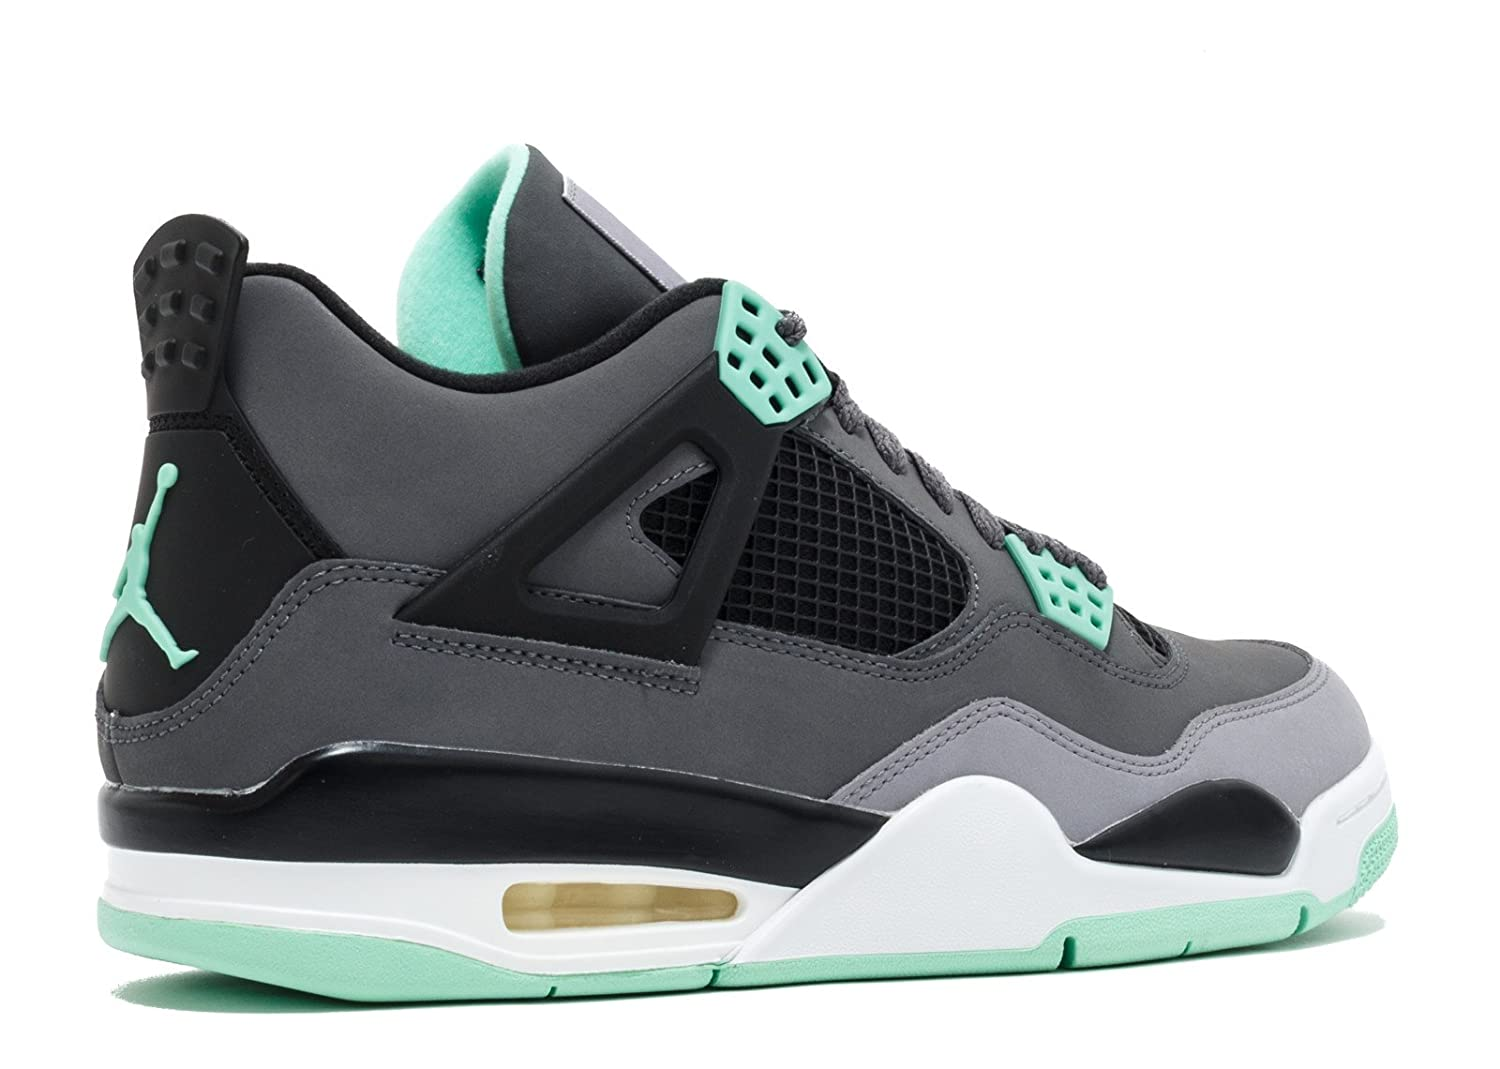 06aa90a0f178e1 ... denmark amazon jordan air 4 retro mens sneakers dark grey green glow cement  grey black fashion